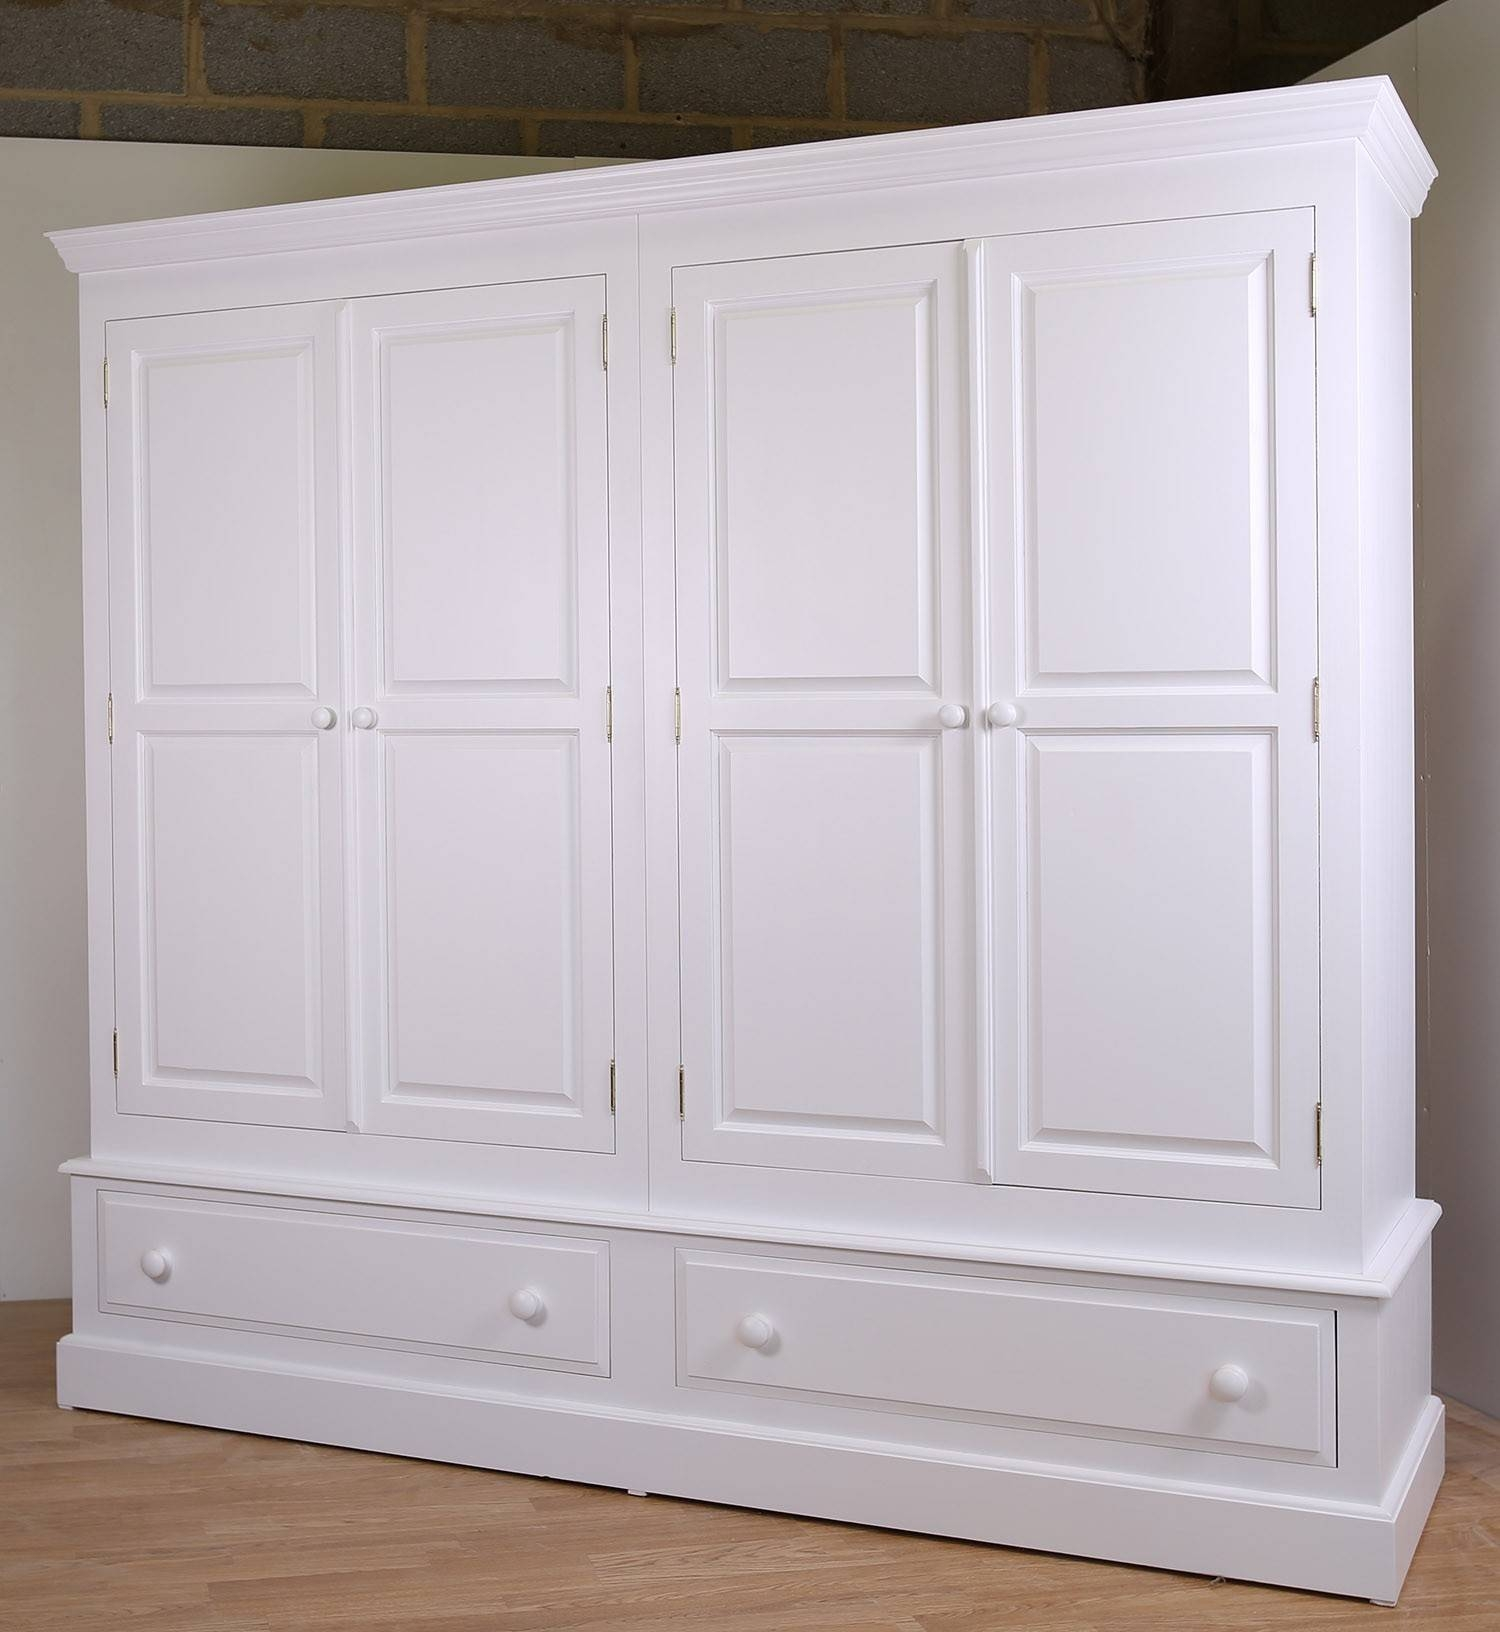 Farrow & Ball Painted 4 Door Wardrobe With Drawers In 3 Sizes in 4 Door Wardrobes (Image 7 of 15)